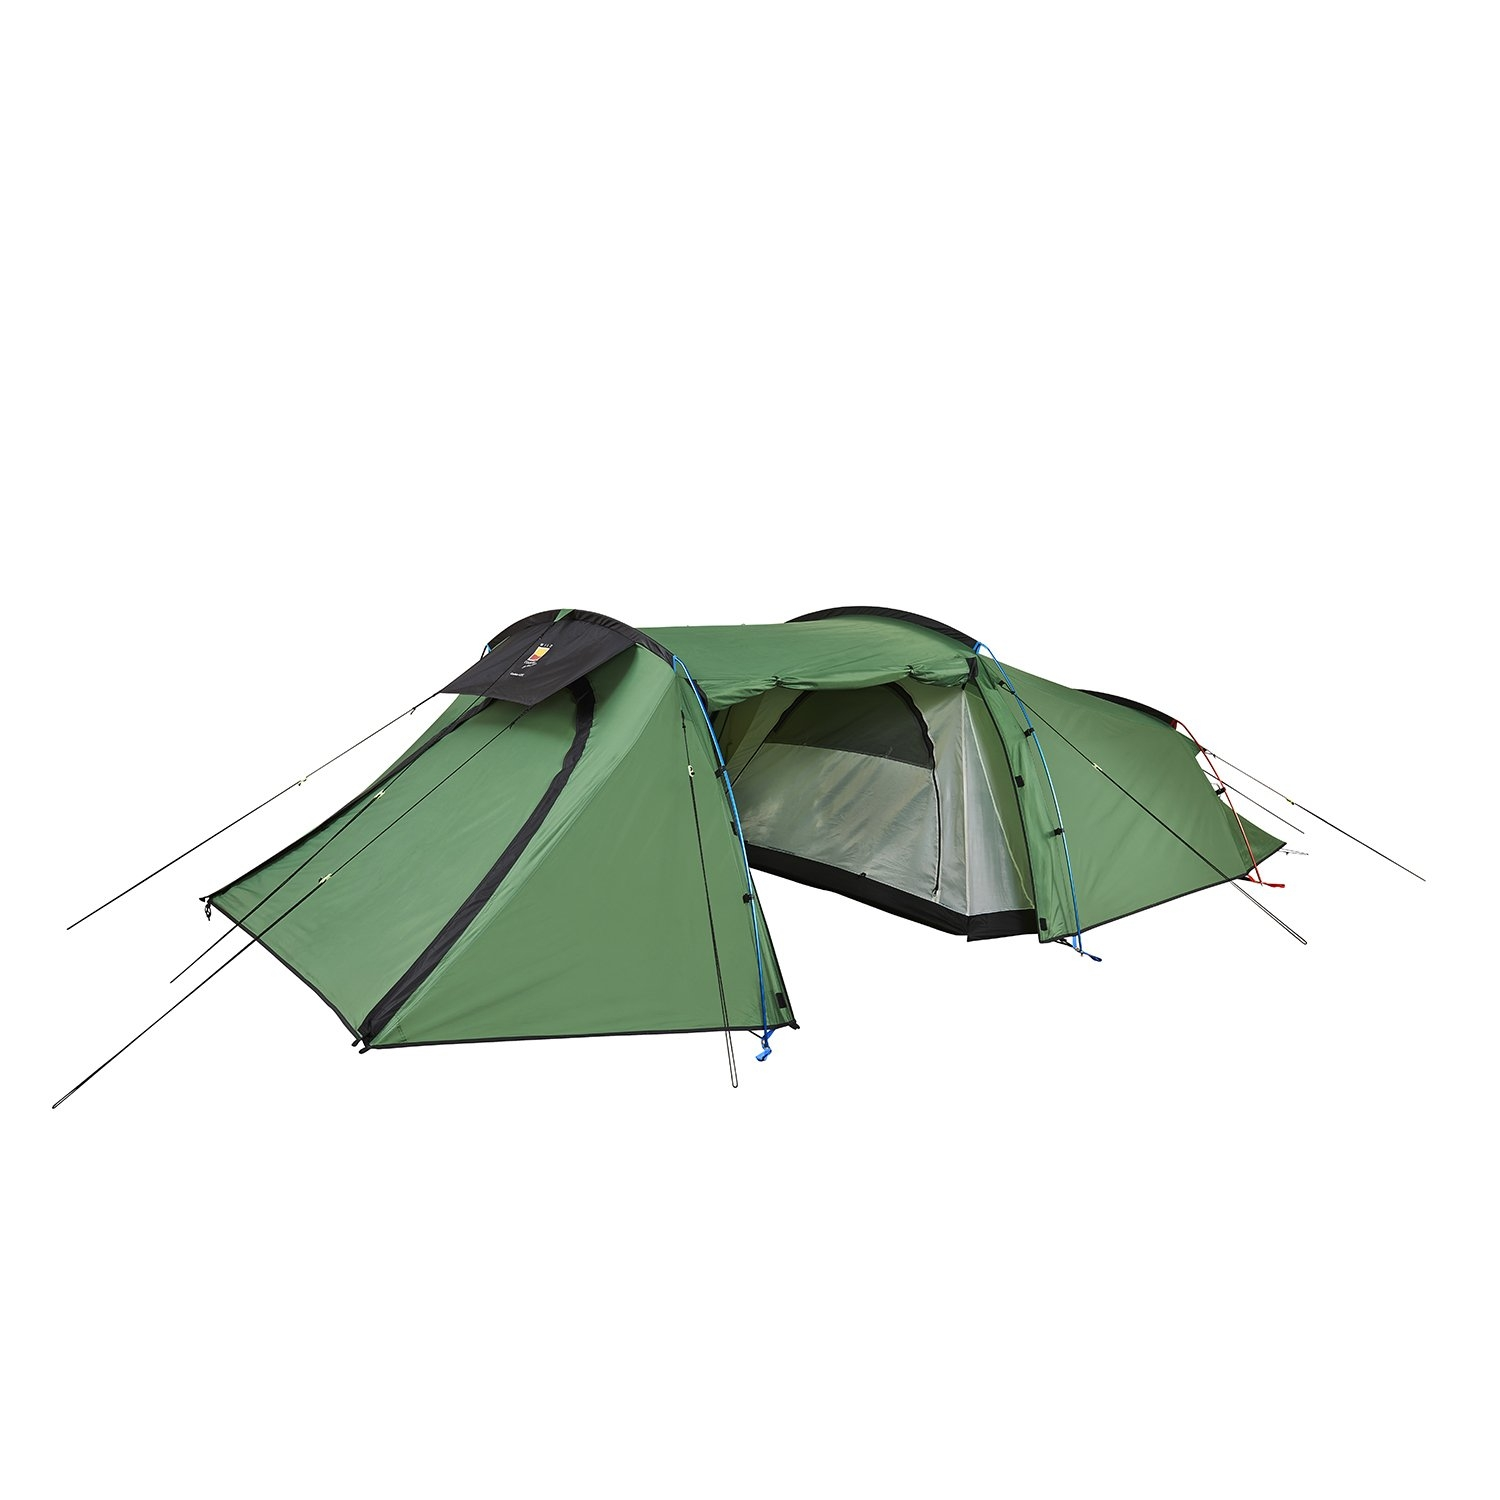 Image of Wild Country Hoolie 6 Tent - Green ...  sc 1 st  Uttings & Wild Country Hoolie 6 Tent - Green | Uttings.co.uk